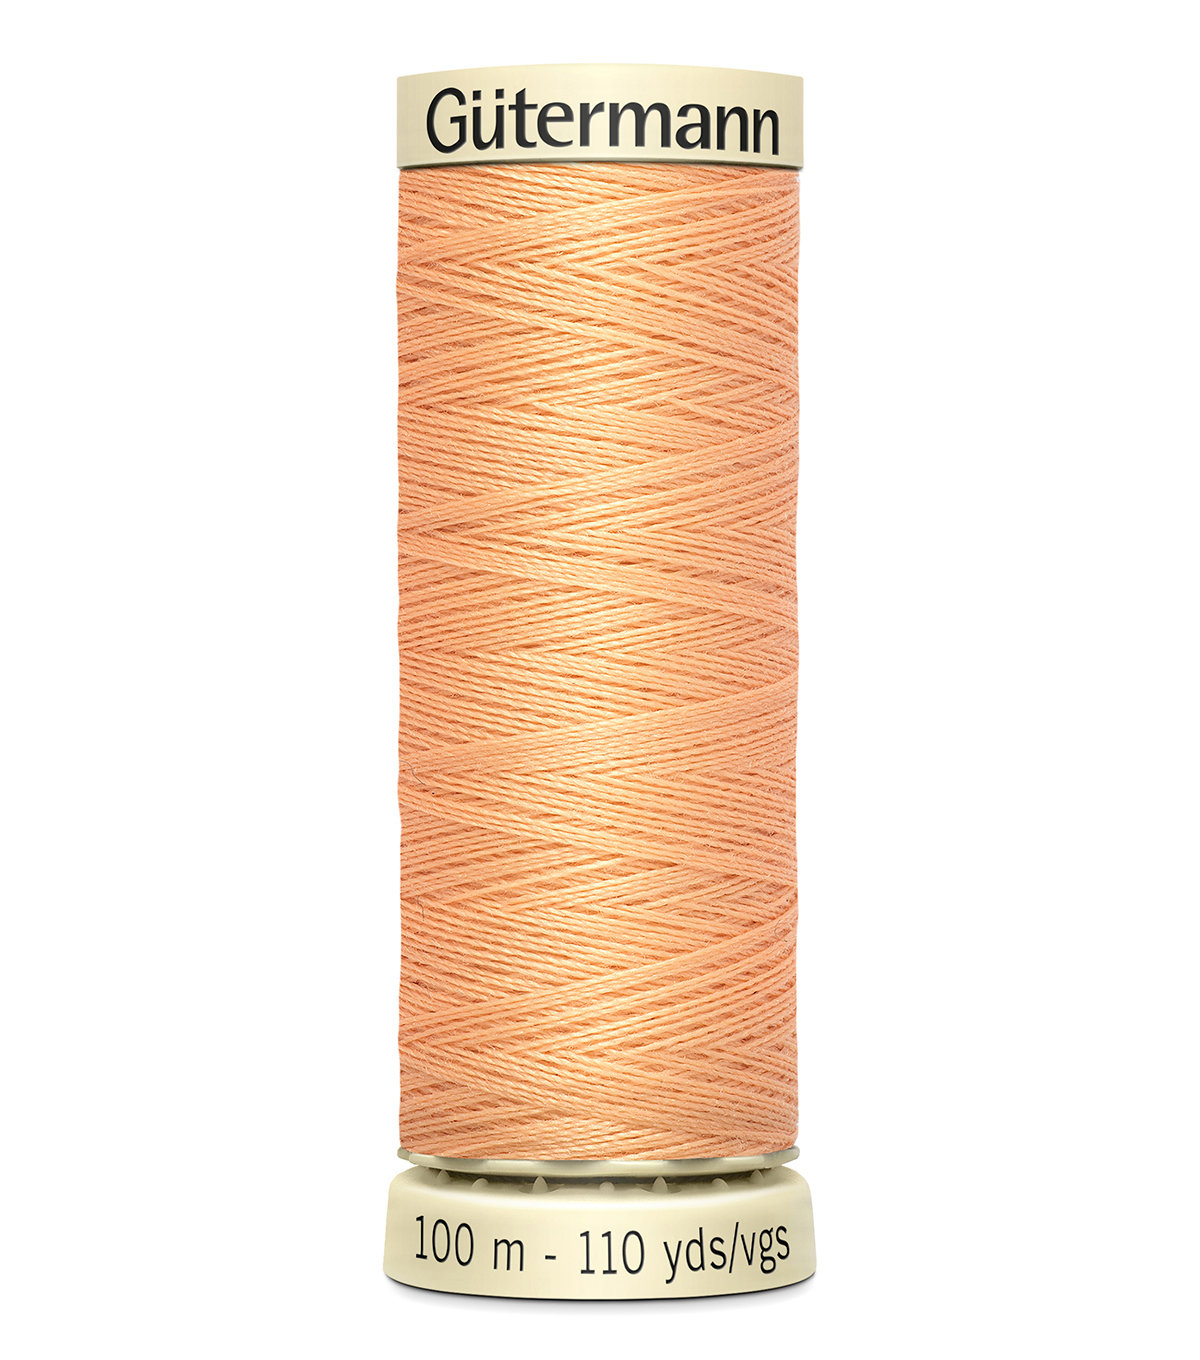 Gutermann Sew All Polyester Thread 110 Yards-Oranges & Yellows , Pwdr Peach